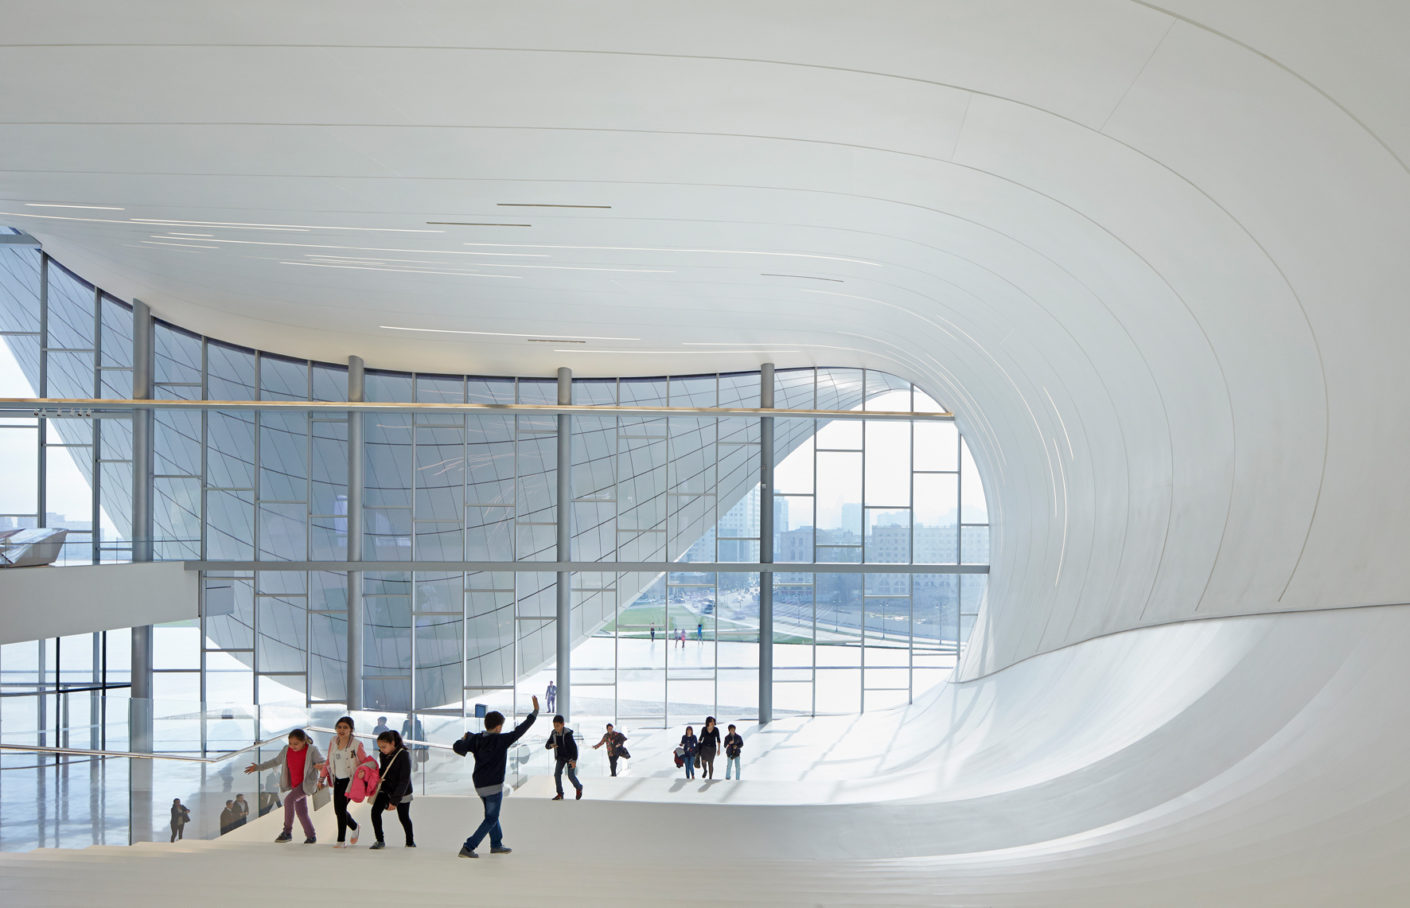 In his opinion, the built environment orders social interaction processes and has an impact on the creation and stabilize social order. The focus is also on property ownership, spatial exclusion and demarcation by physical barriers with corresponding access rights. Project: Heydar Aliyev Centre in Baku